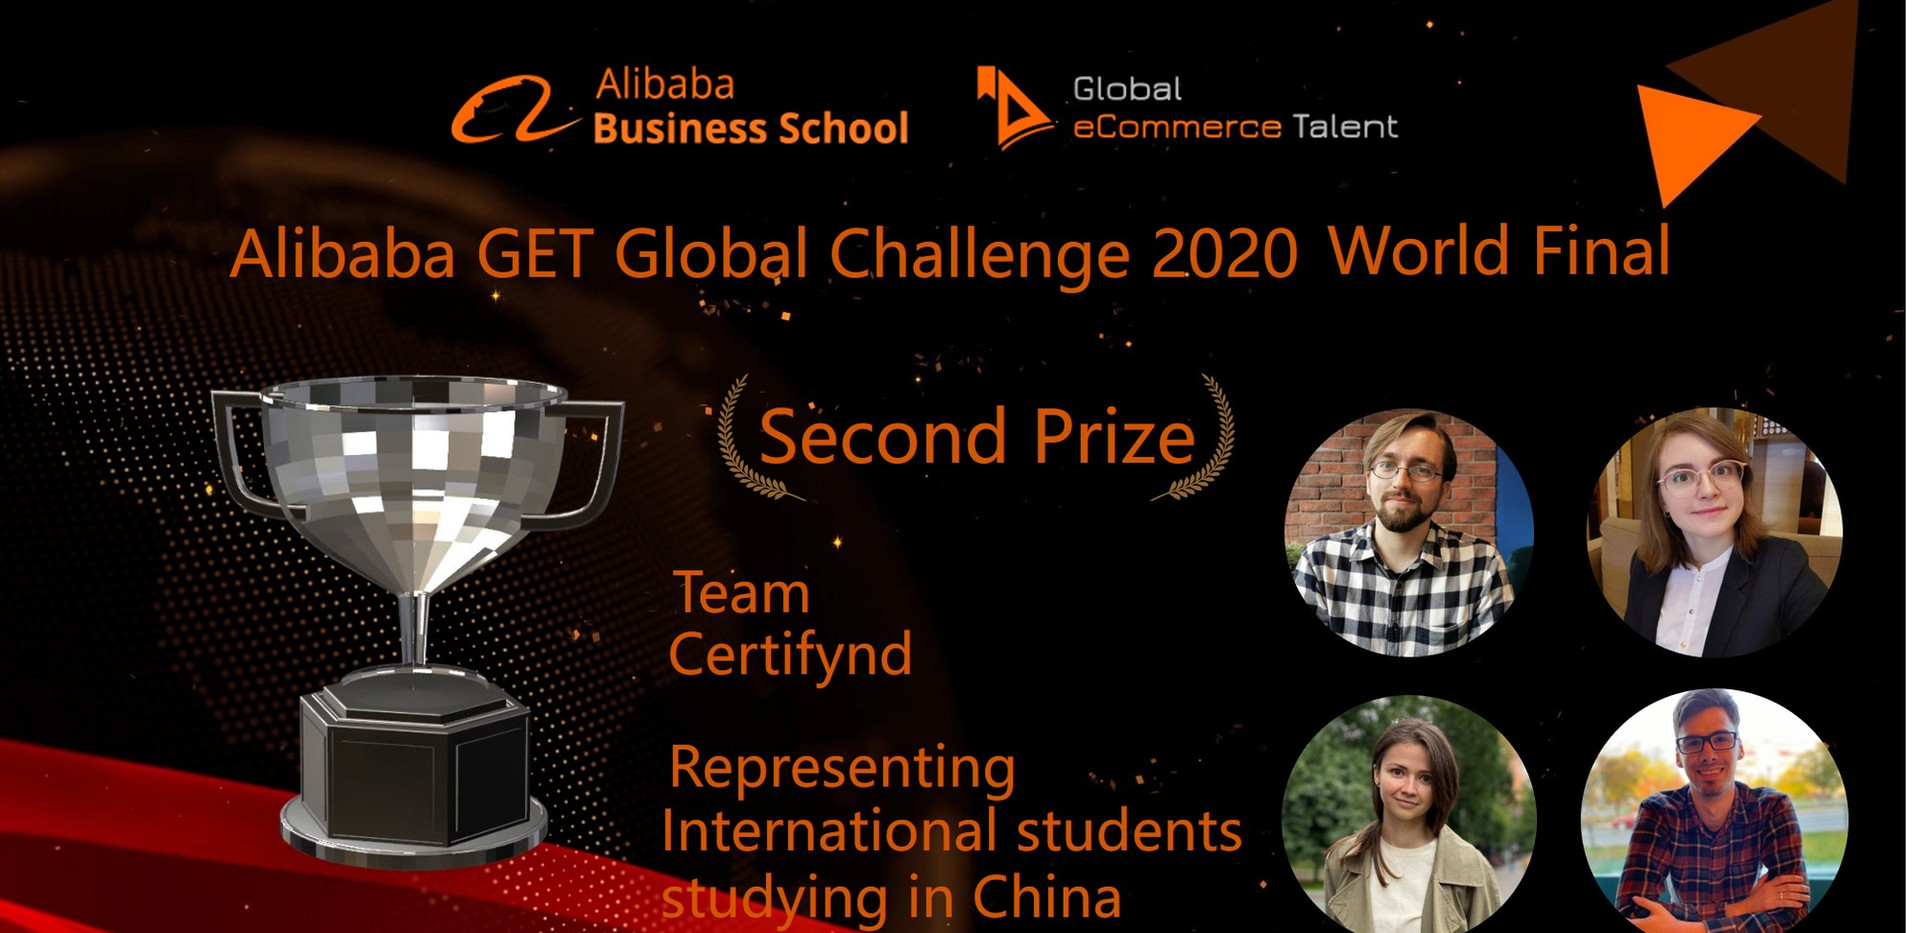 Second Prize - Int'l Students from China